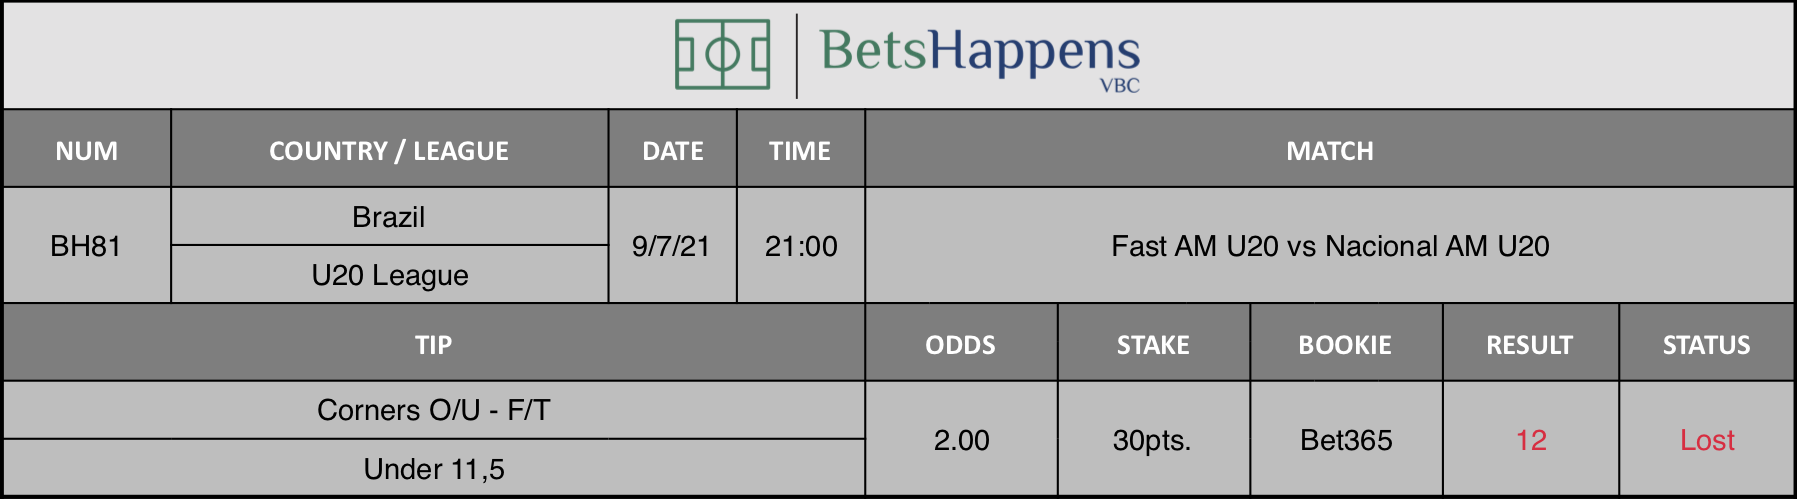 Results of our advice for the Fast AM U20 vs Nacional AM U20 match in which Corners O / U 1st Half Under 11,5 is recommended.